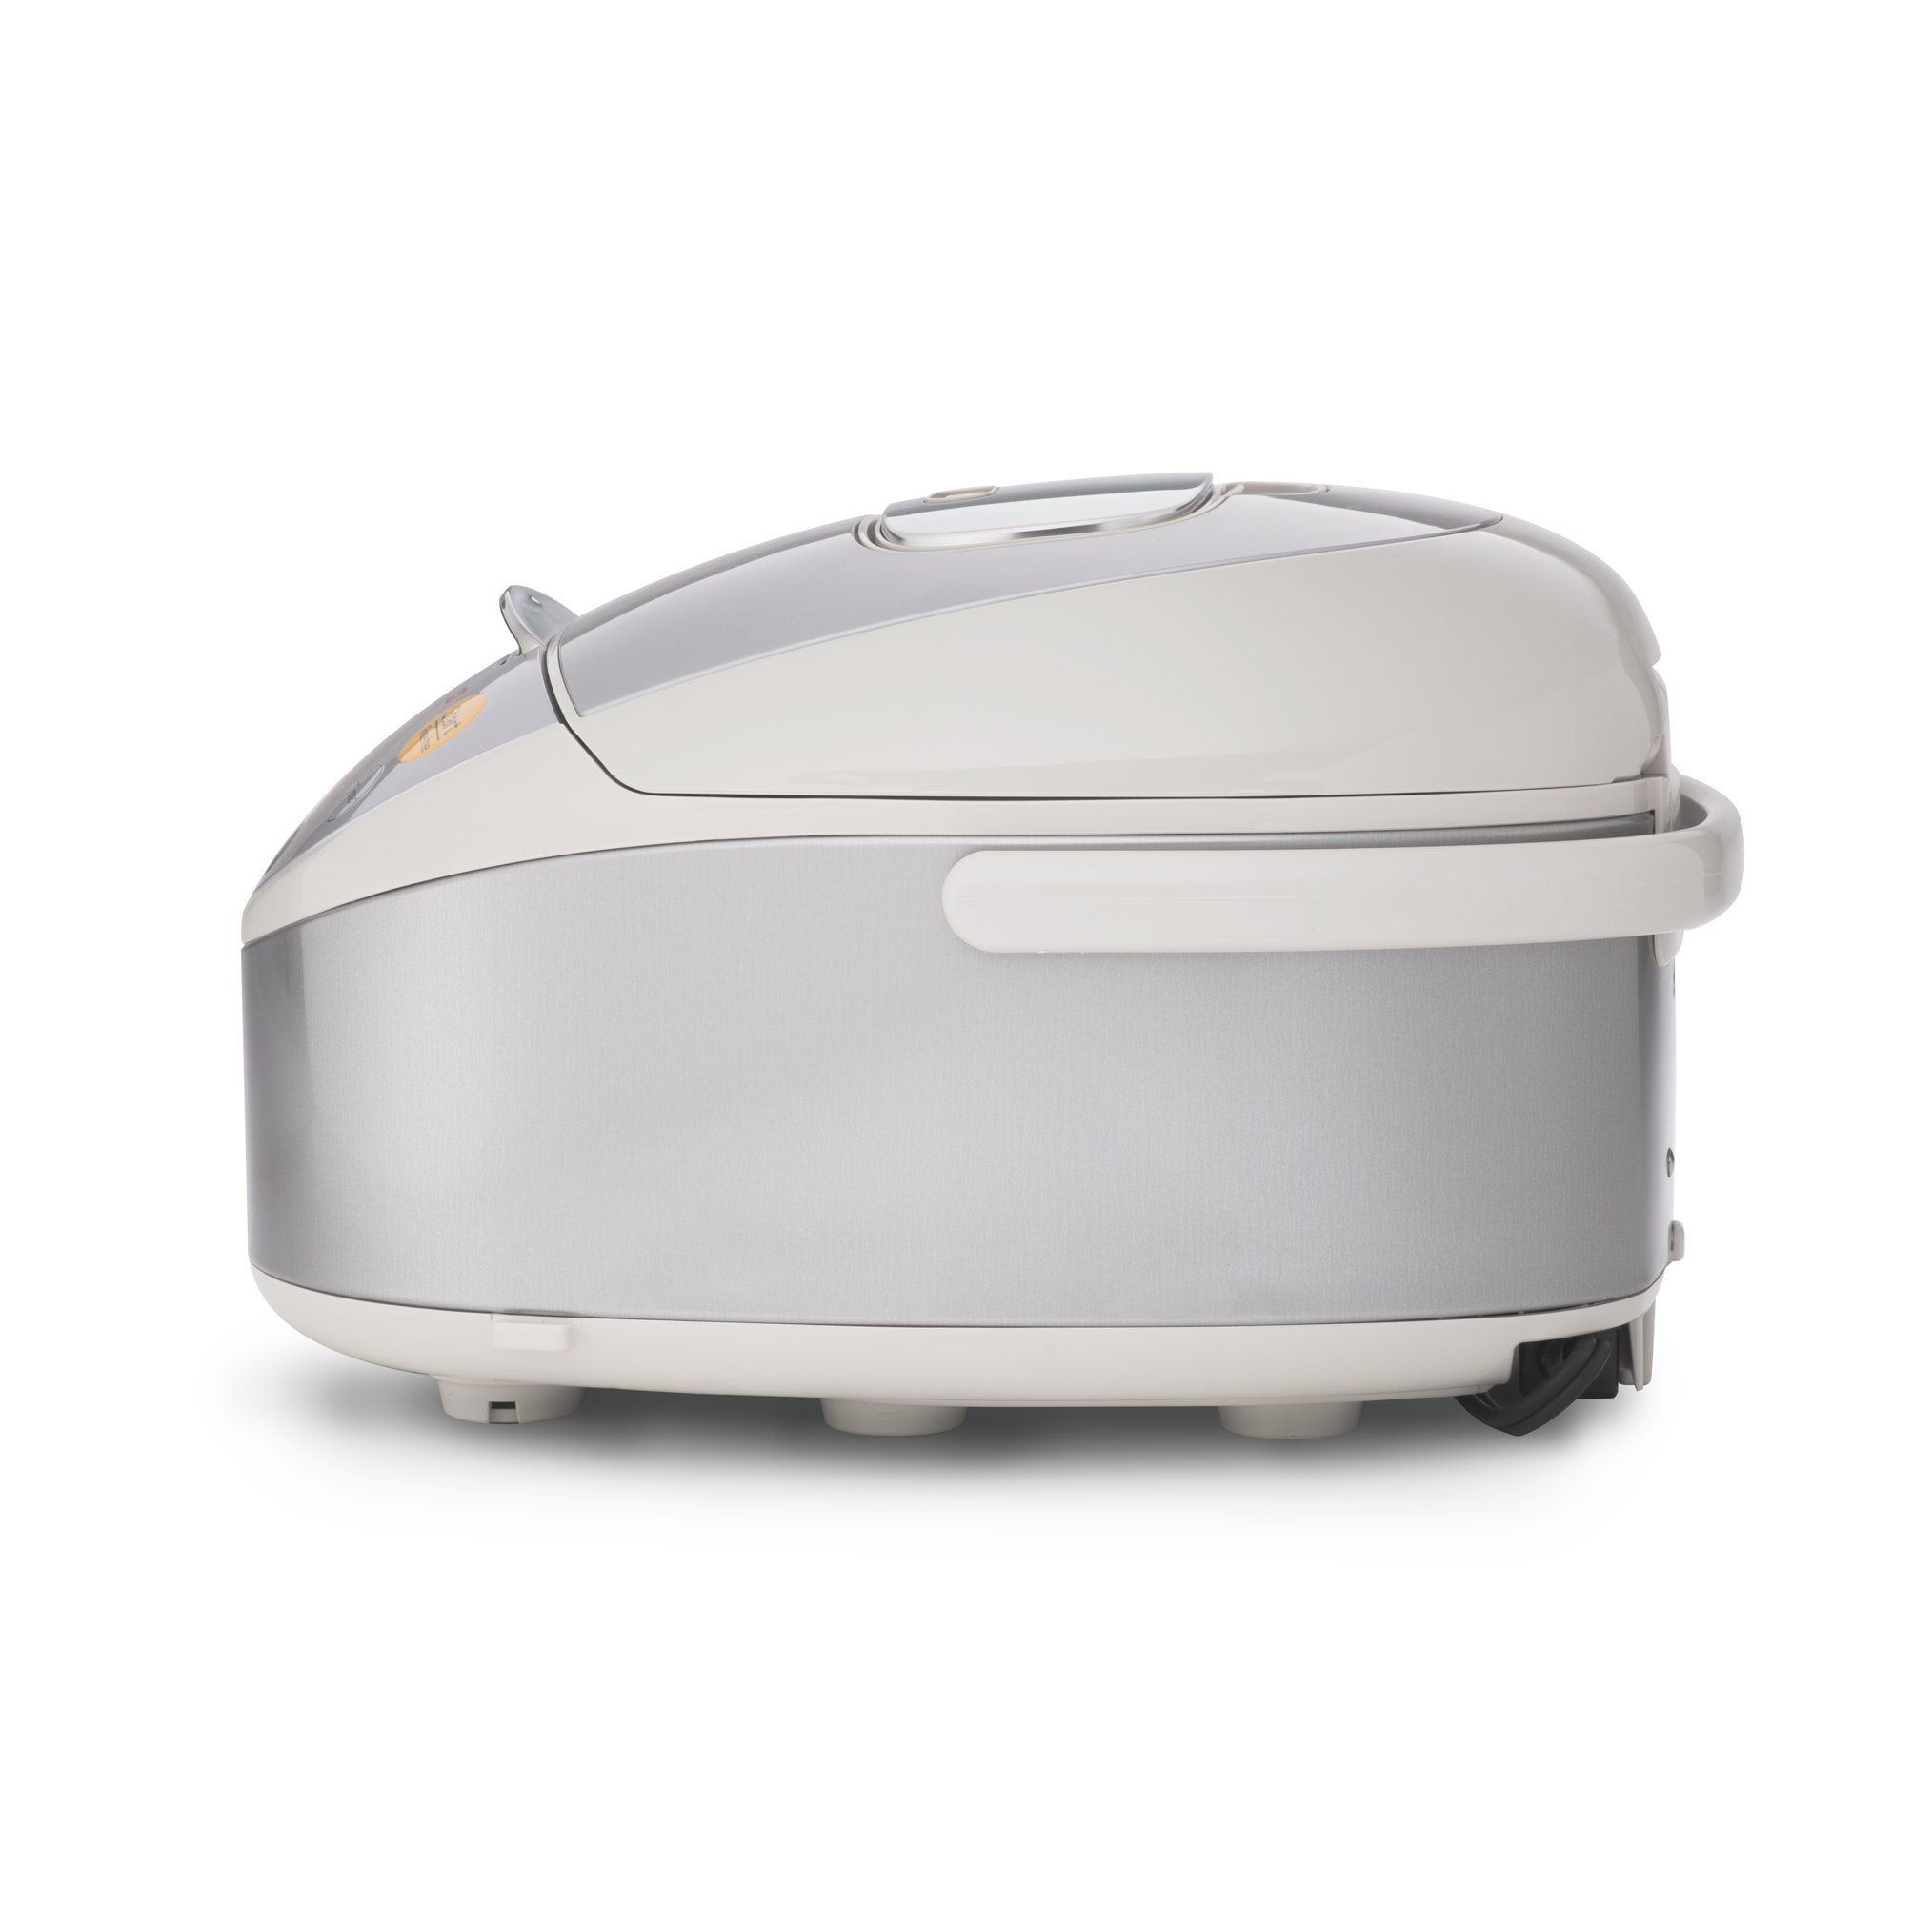 Tiger JKT-B10U-C 5.5-Cup Stainless Steel Rice Cooker, Beige by Tiger Corporation (Image #2)